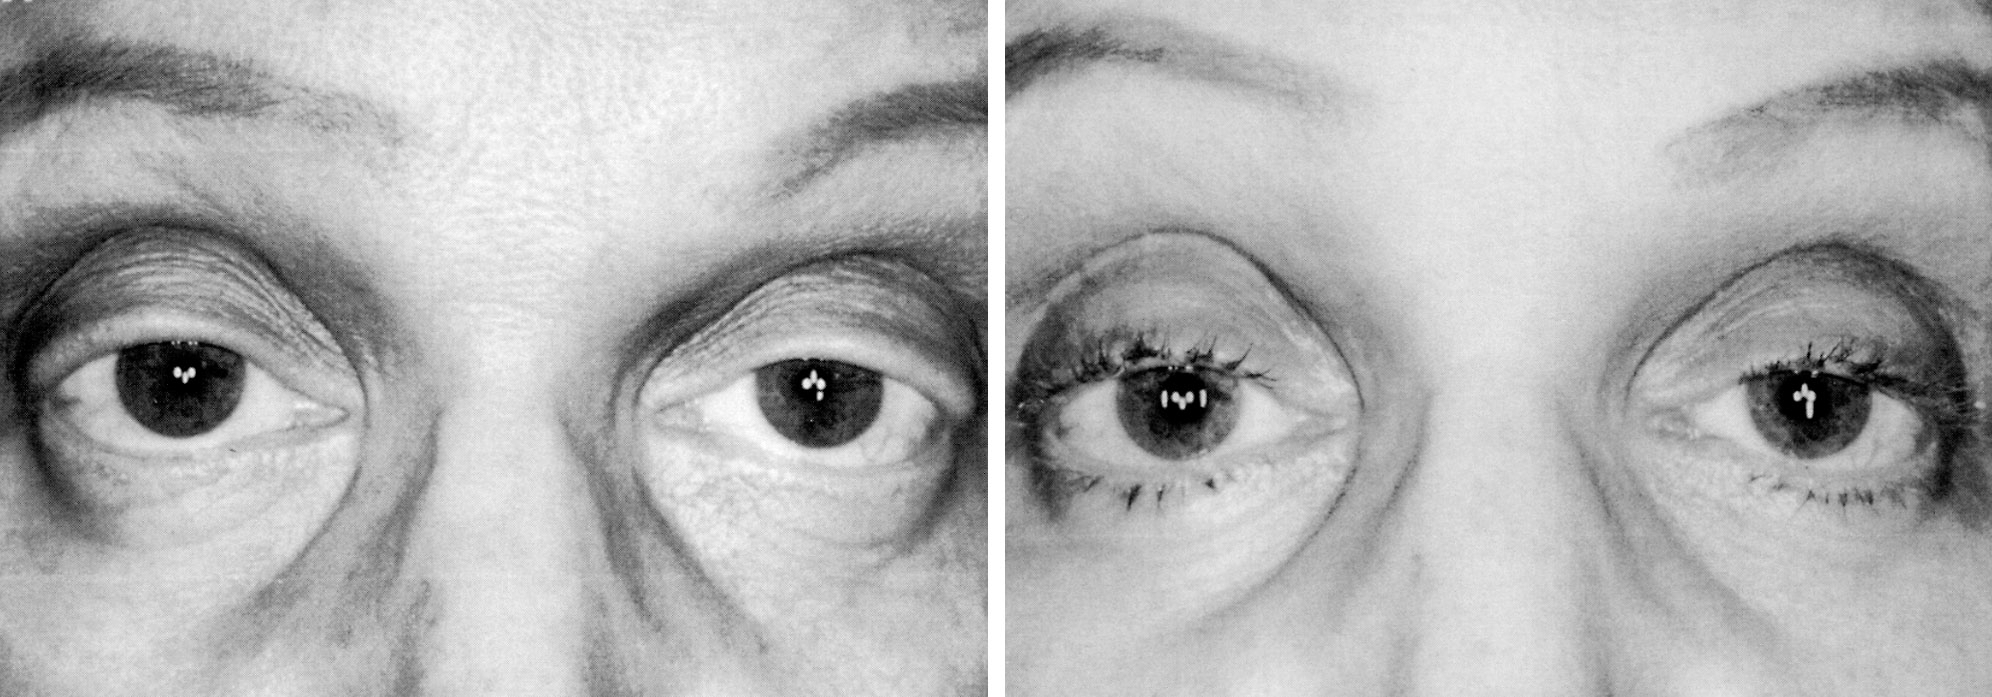 Eyelash Formation Secondary To Latanoprost Treatment In A Patient